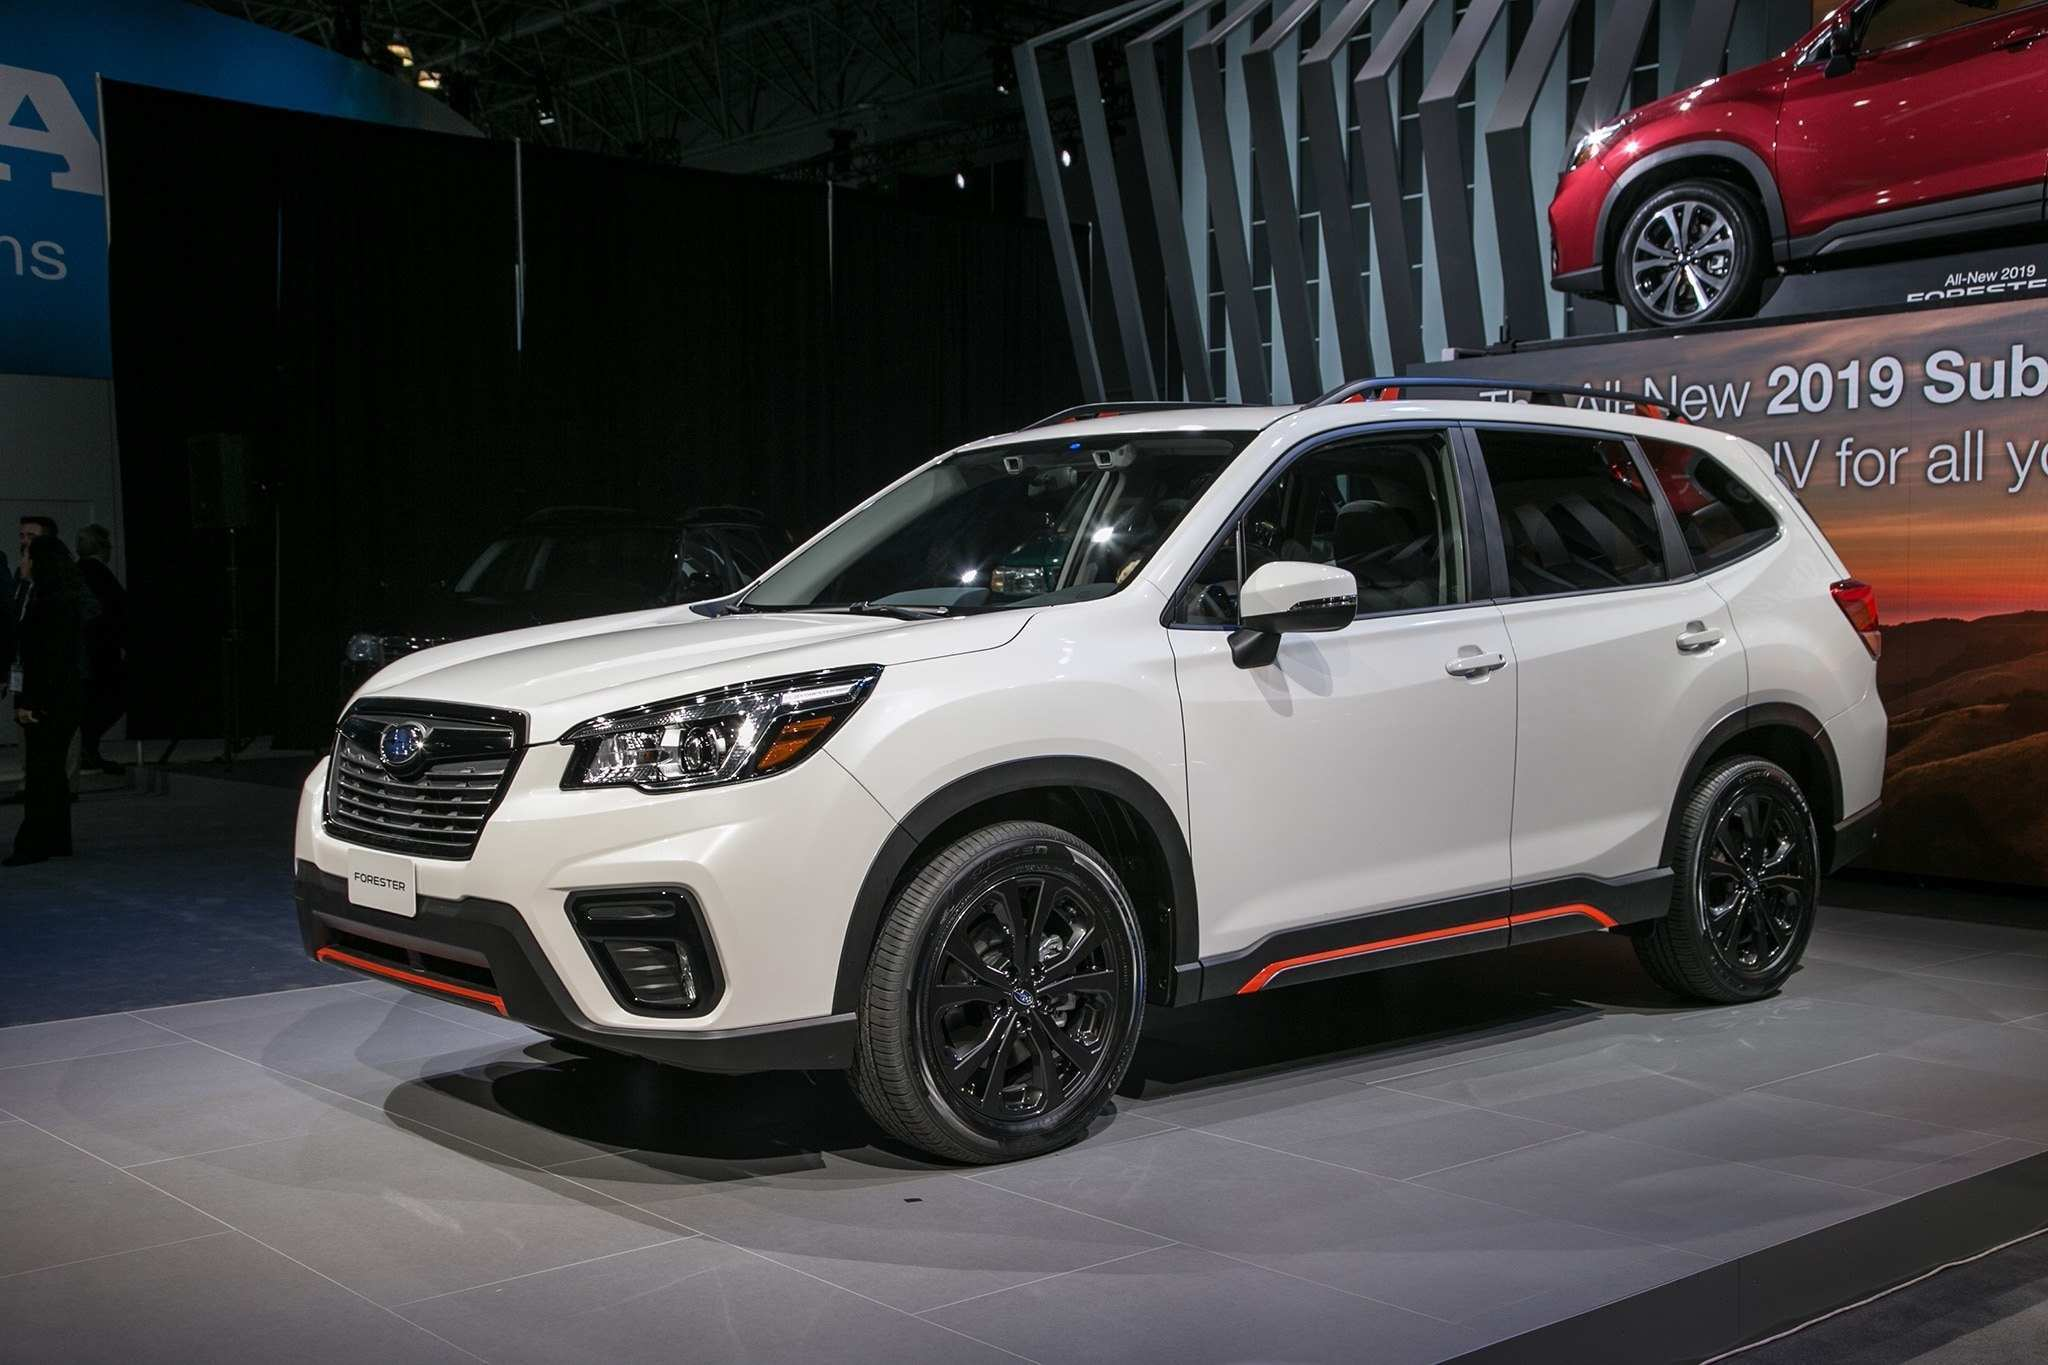 33 New Subaru Xv Turbo 2019 Redesign And Concept